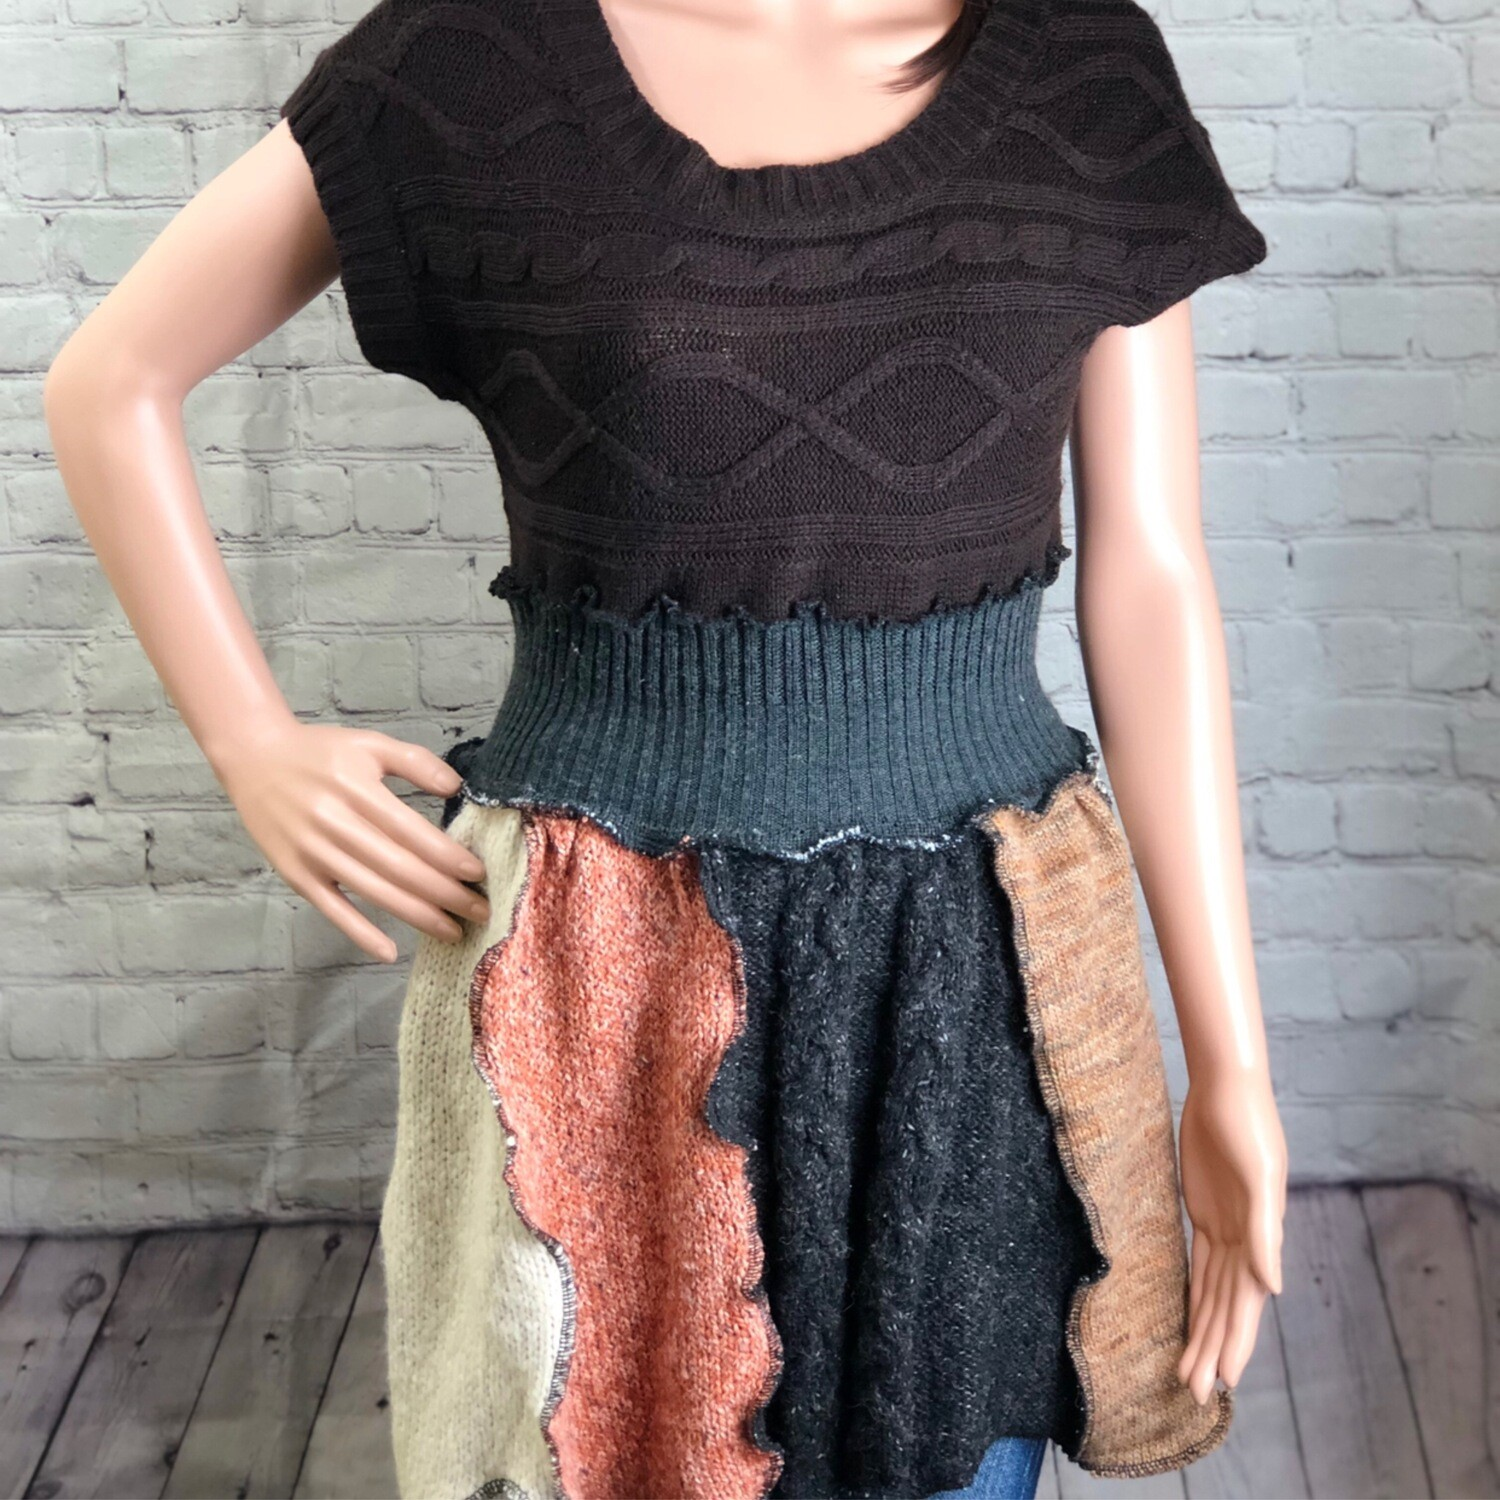 SThreads Upcycled Recycled Brown Short Sleeve Recycled Panel Sweater Babydoll Top dress tunic bohemian eco friendly Katwise Inspired Size L